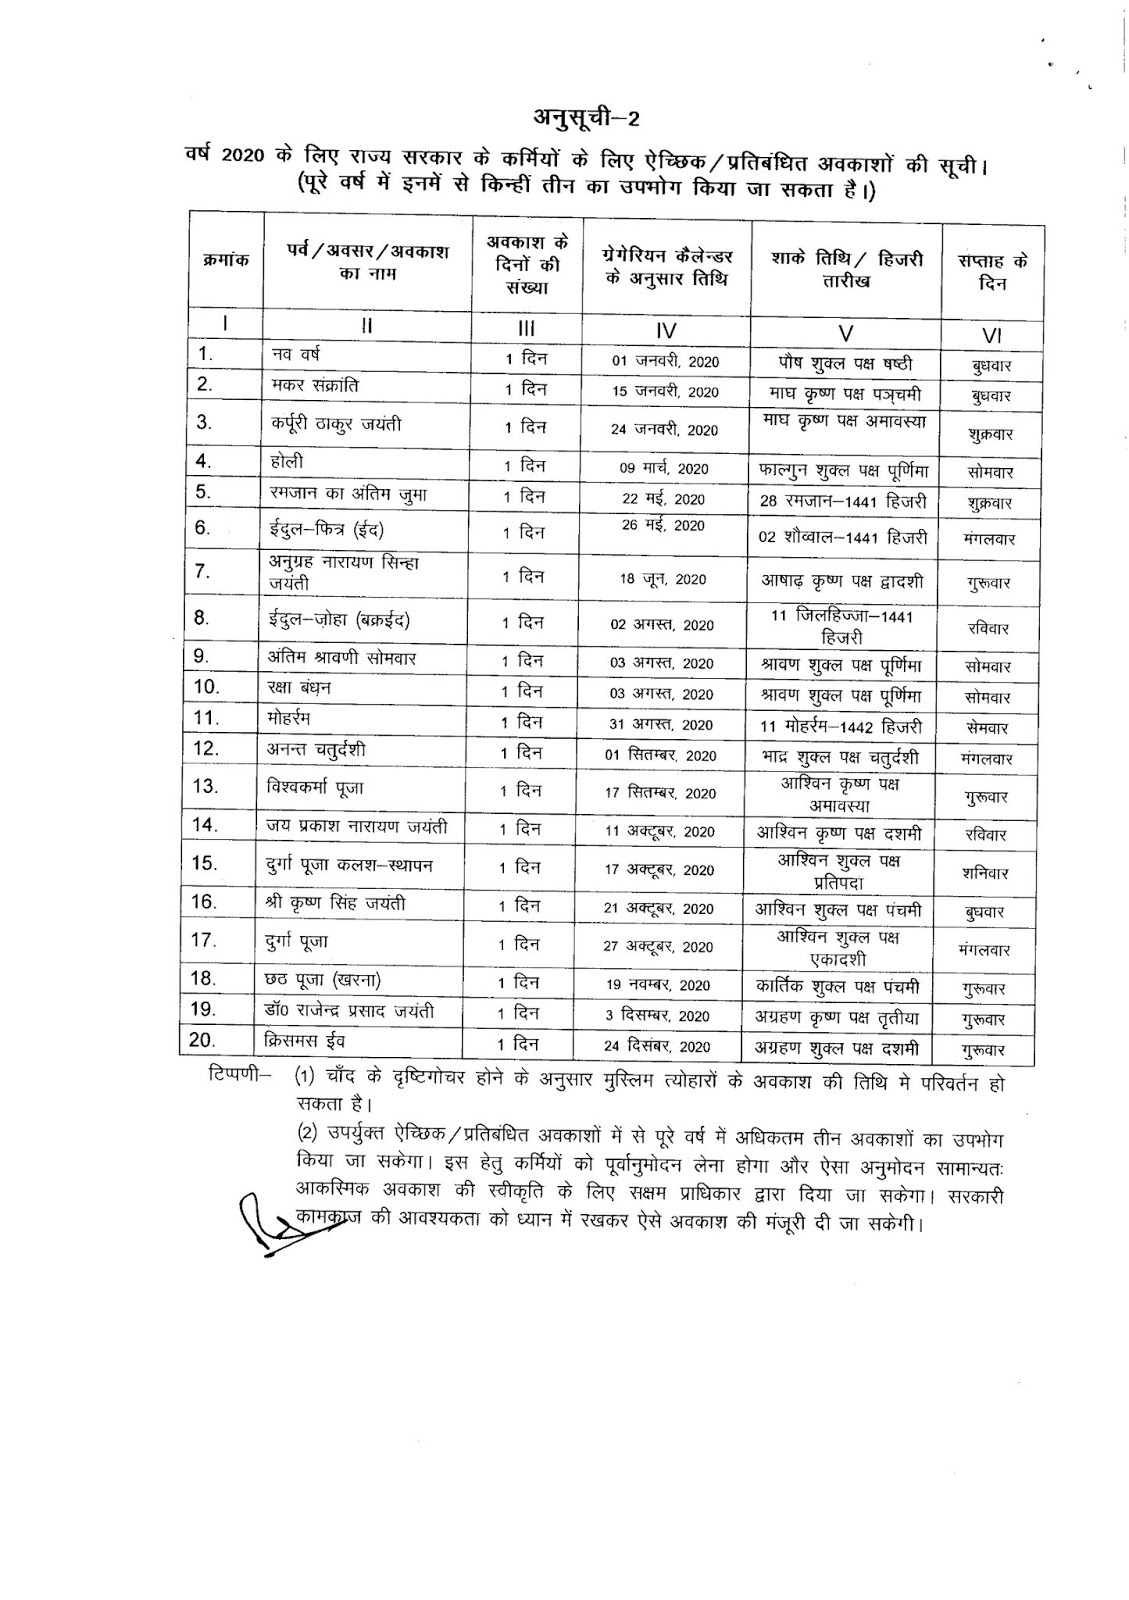 Bihar Government Calendar 2020 #educratsweb inside 2020 Bihar Government Calendar